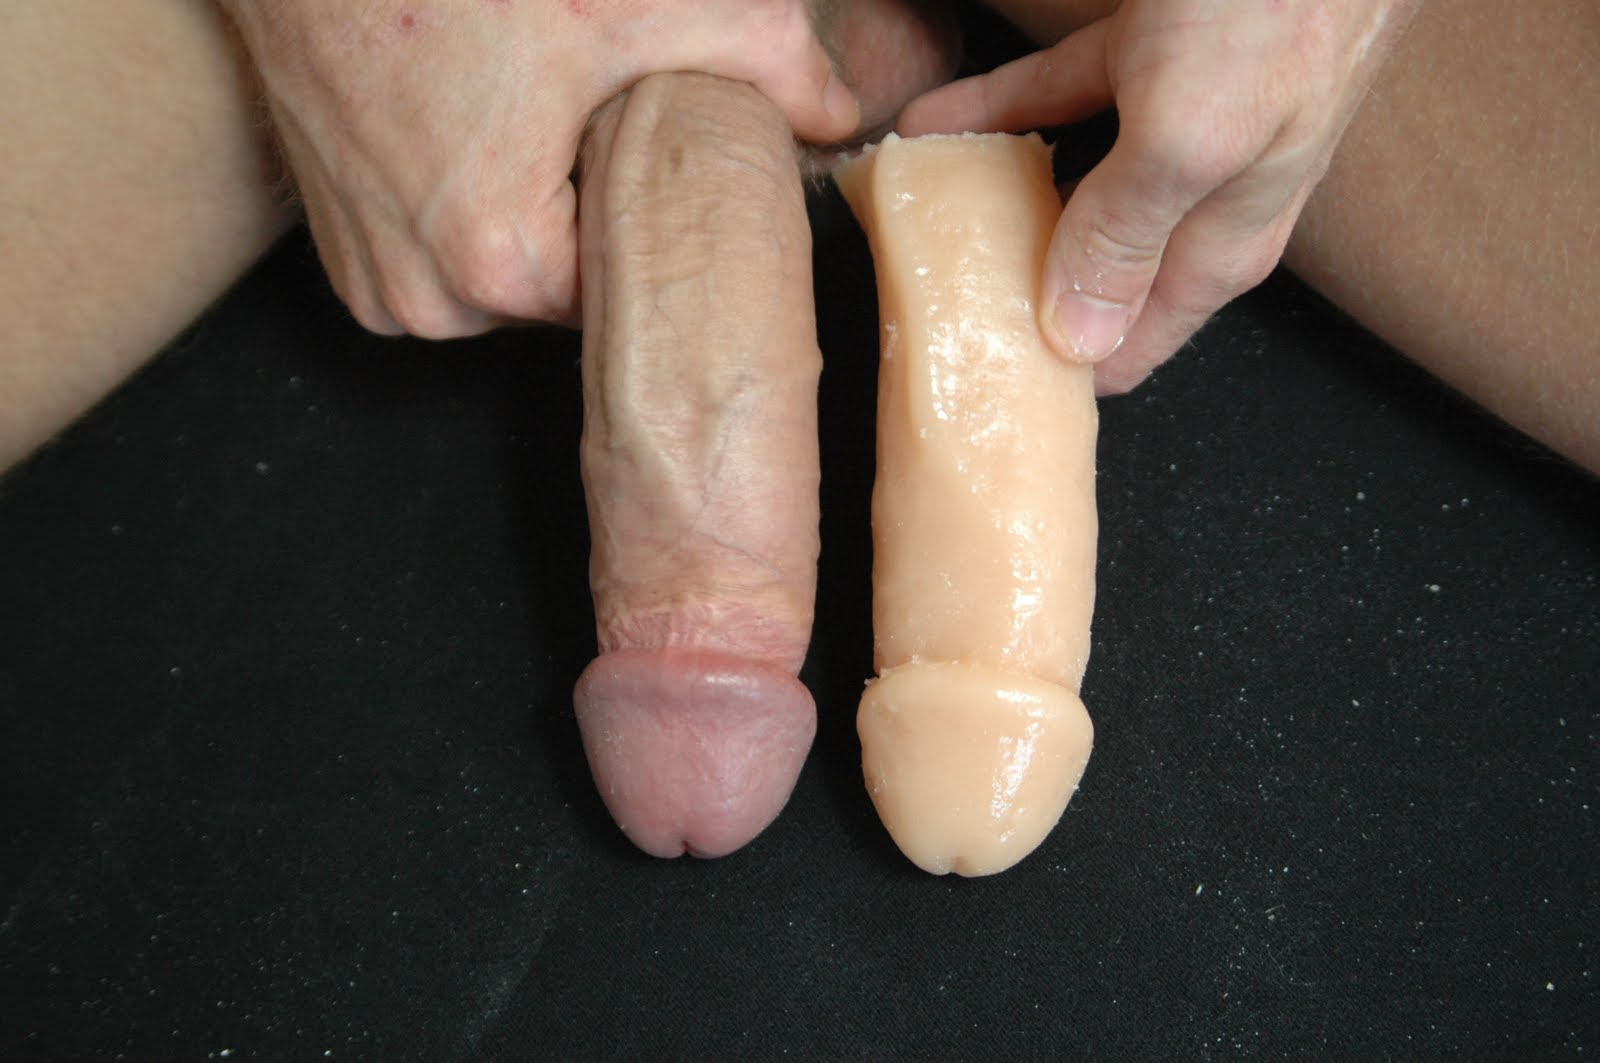 Stretching arse with two dildos to become wid